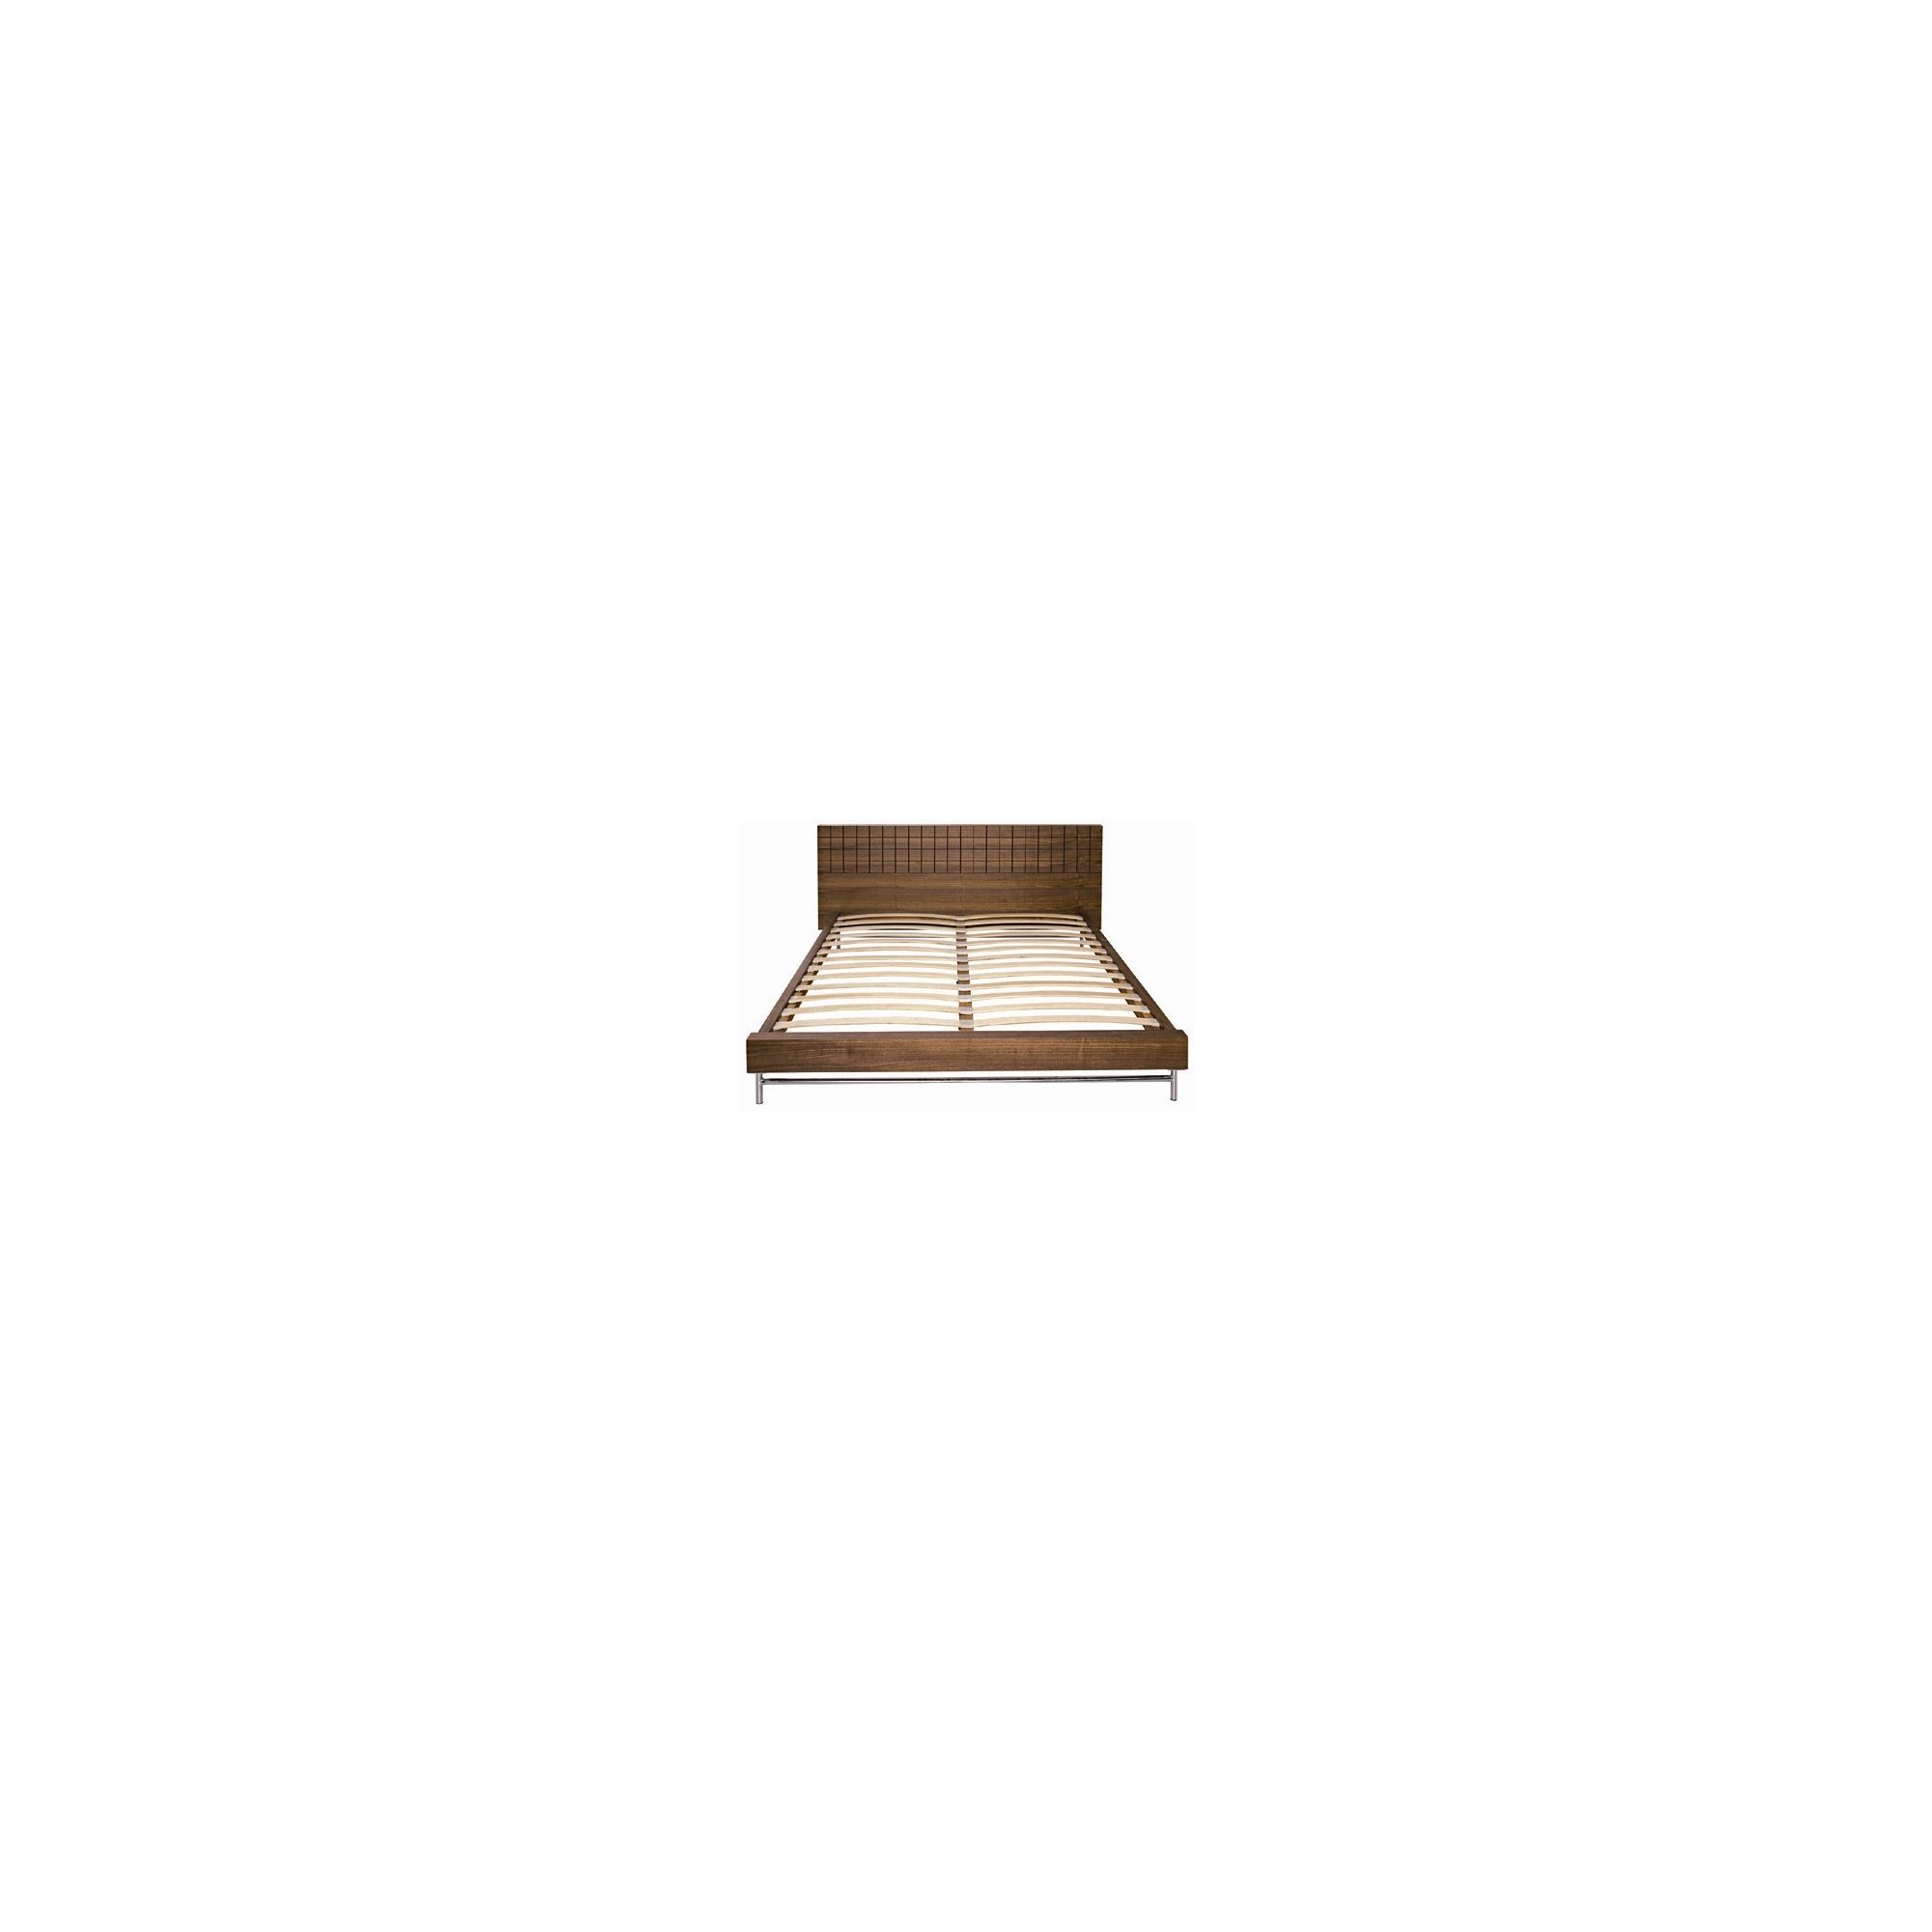 Gillmore Space Barcelona Bed - Double - Walnut at Tesco Direct